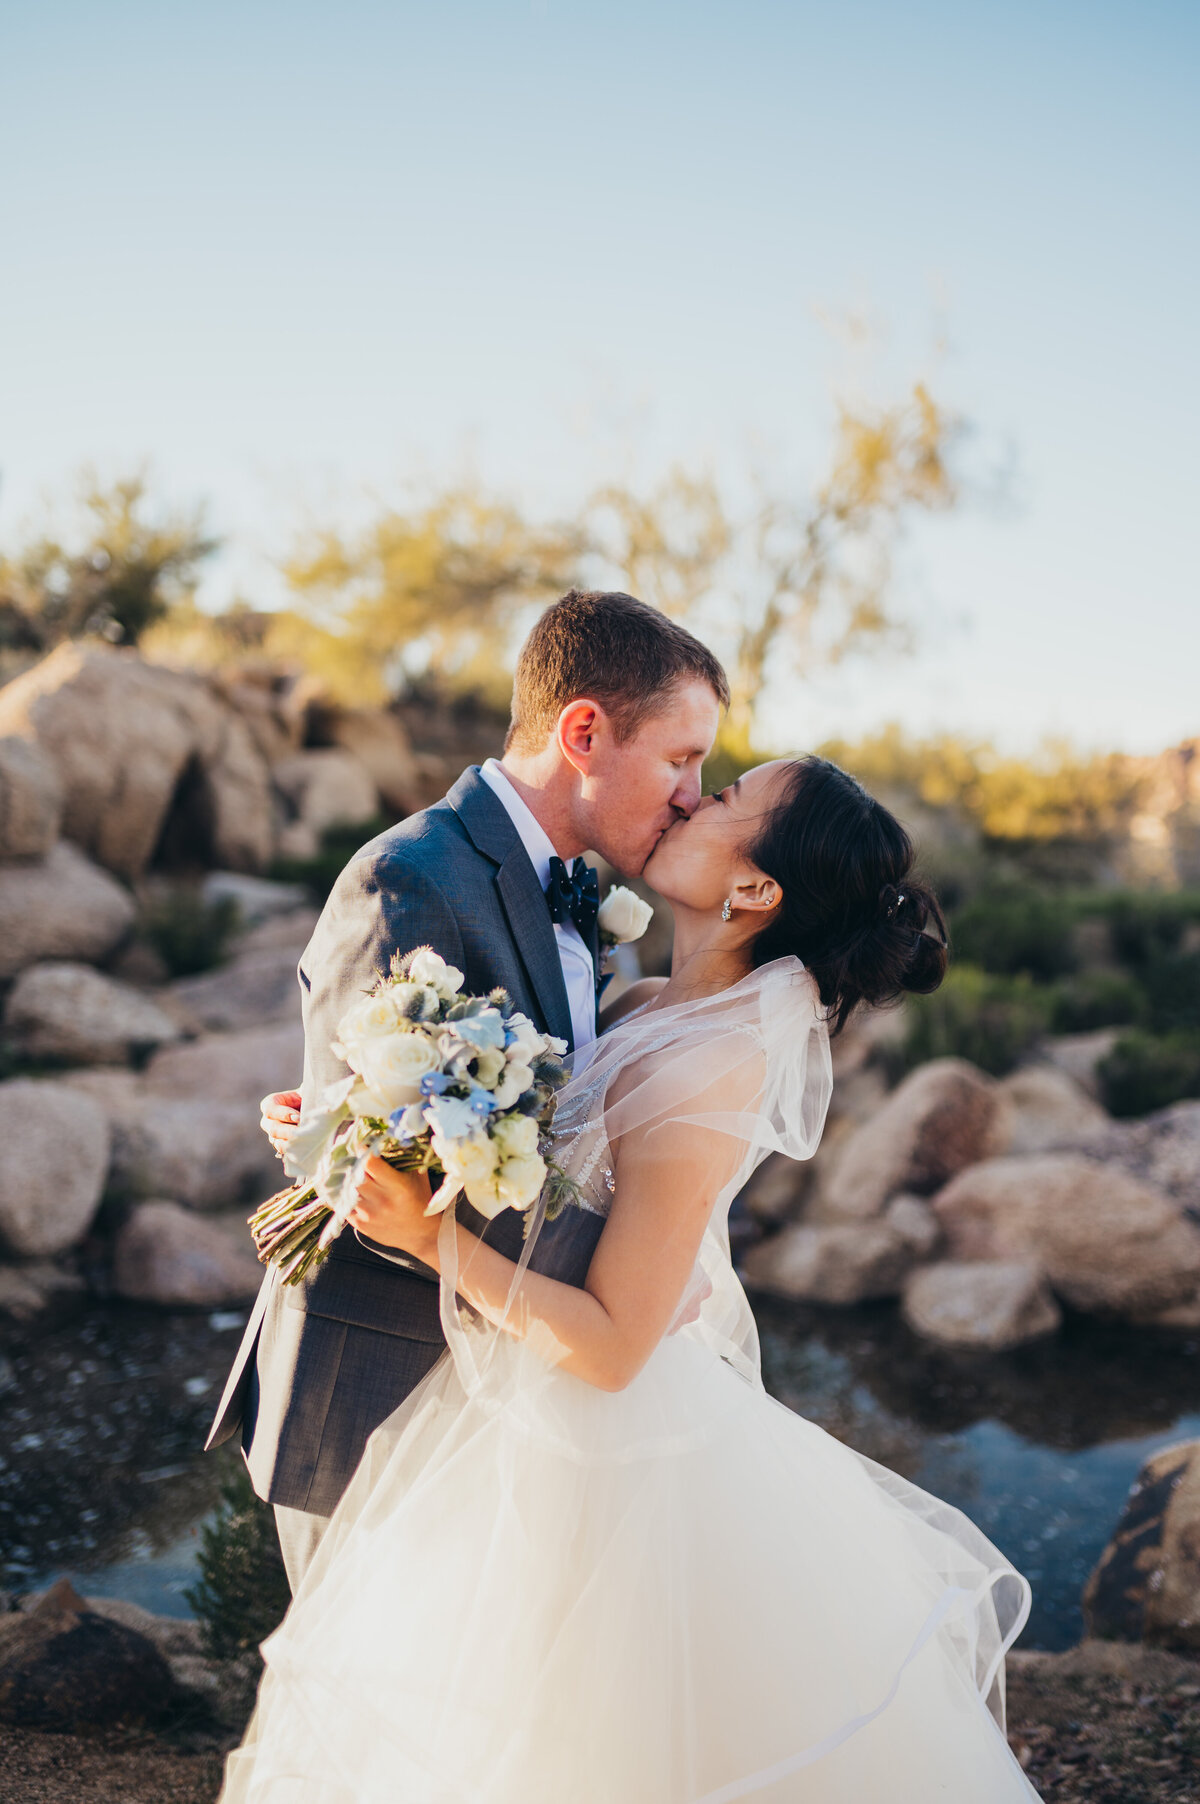 No matter the wedding venue Rusty Metals Photography is your Arizona Wedding Photographer